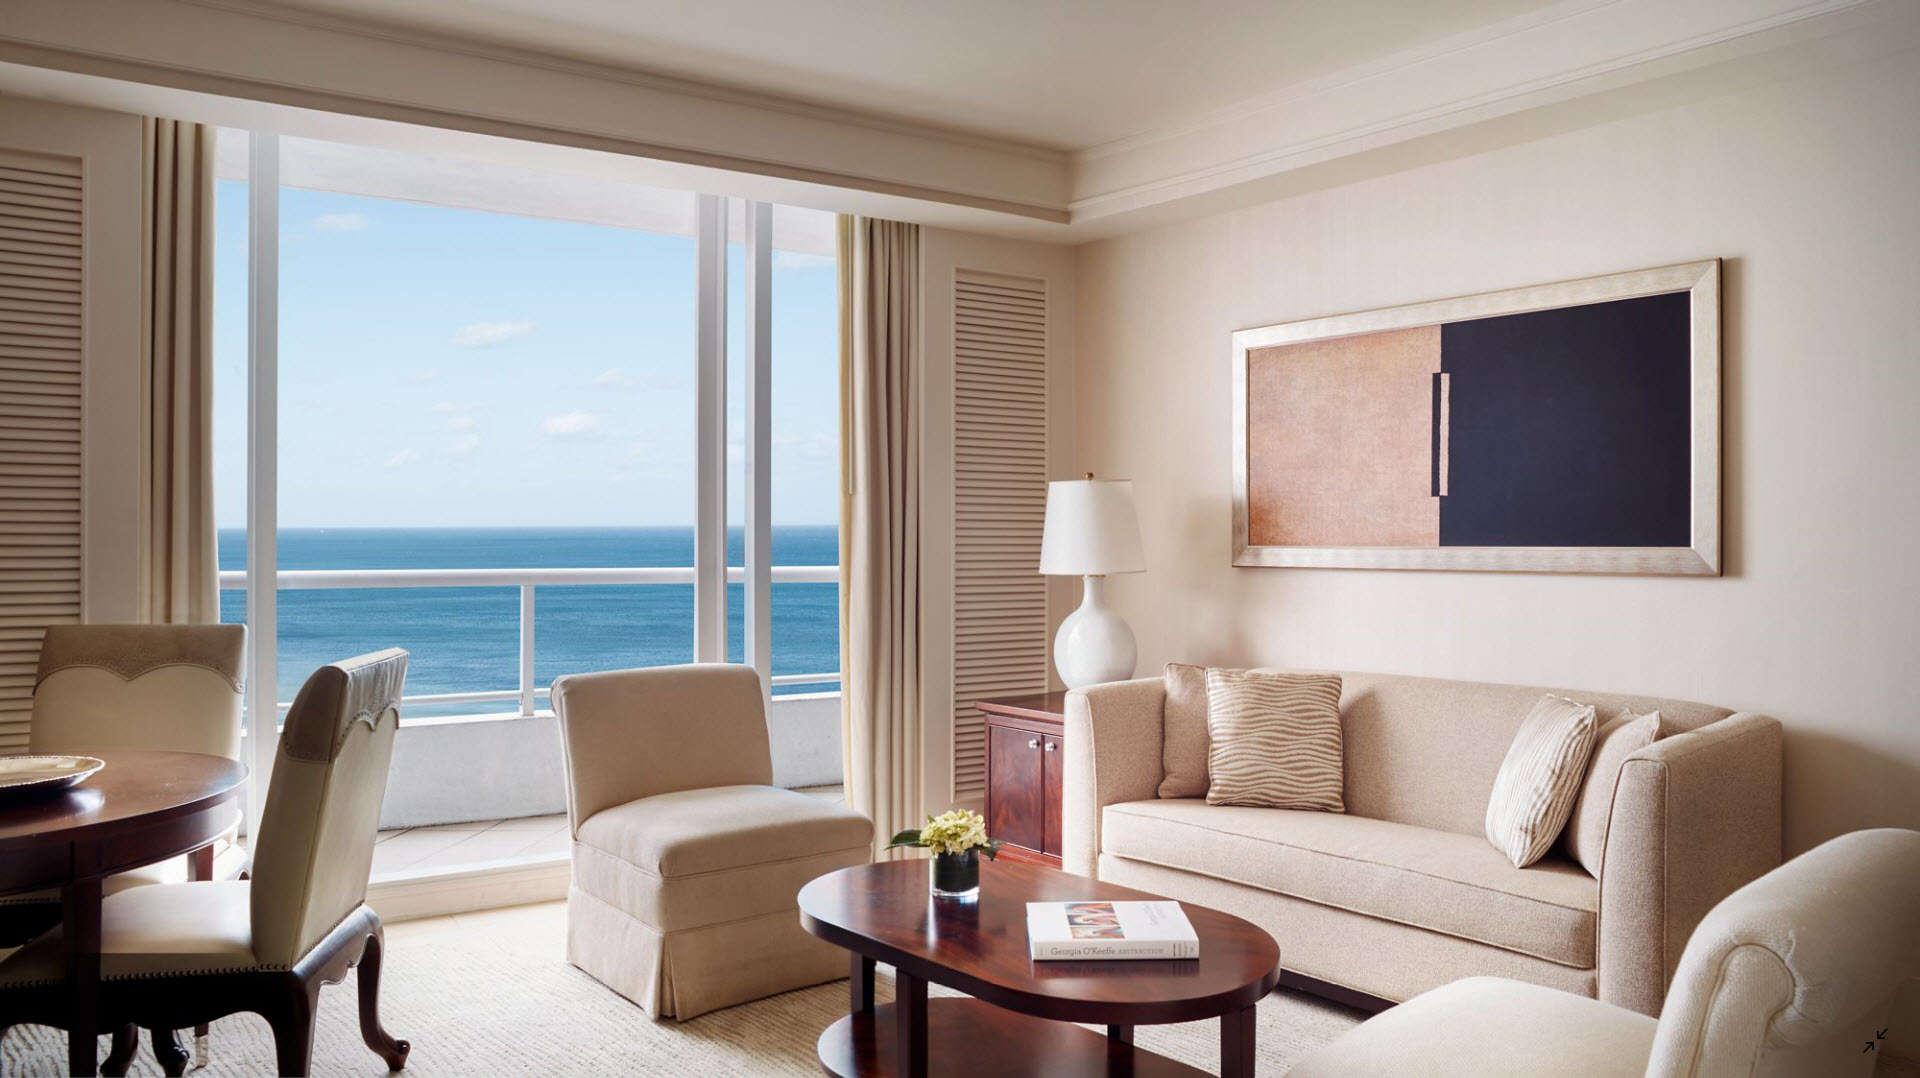 Luxury vacation rentals usa - Florida - Fort lauderdale - The ritz carlton fortlauderdale - 1 BDM Oceanfront Residential - Image 1/8